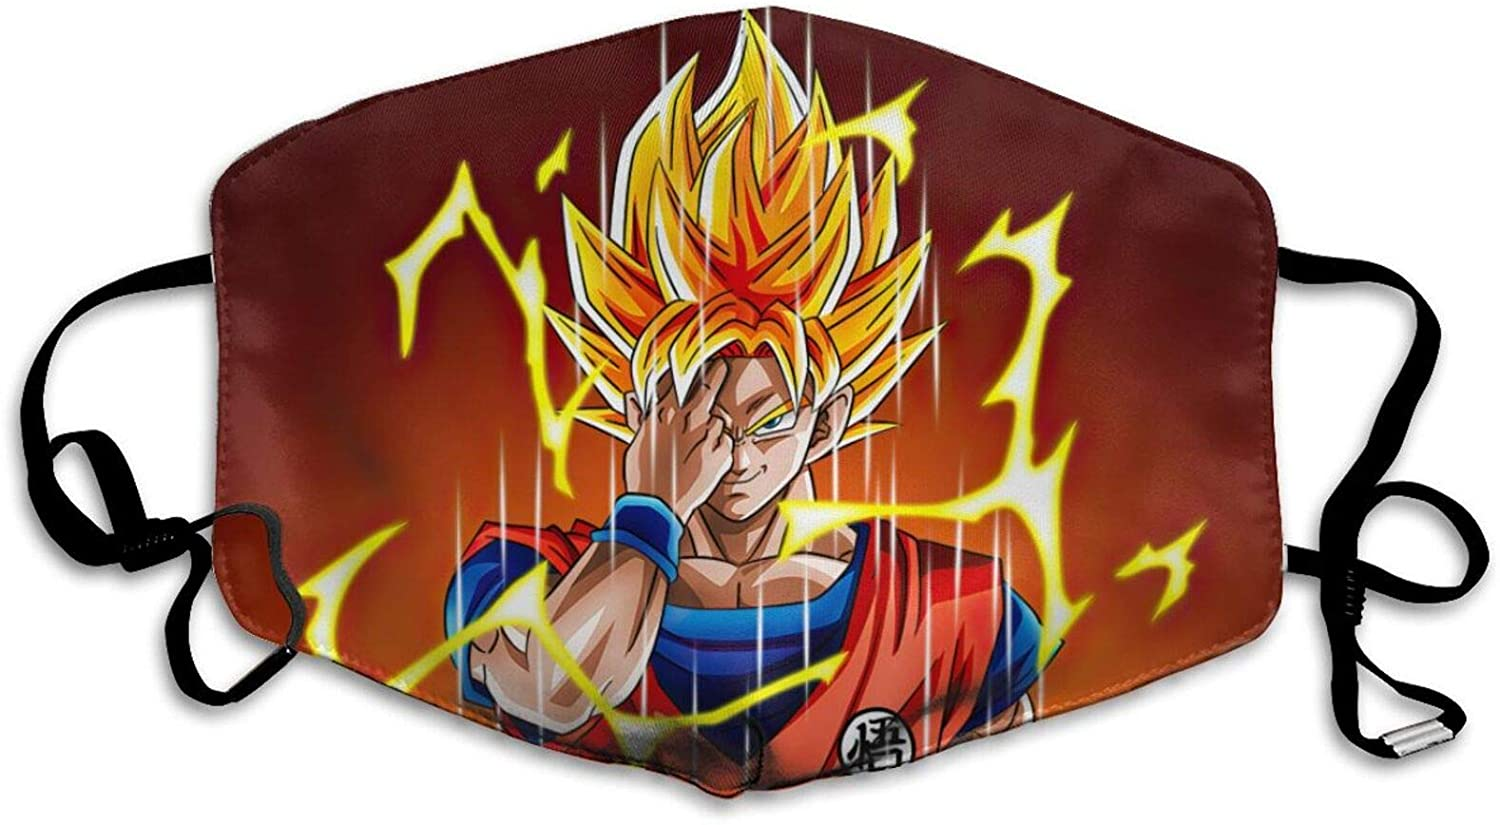 Anime Dragon-Ball Face C-over Christmas Anti-dust Cloth Neck Gaiter Son Goku Bandana Scarf for Outdoors Cycling Camping 05